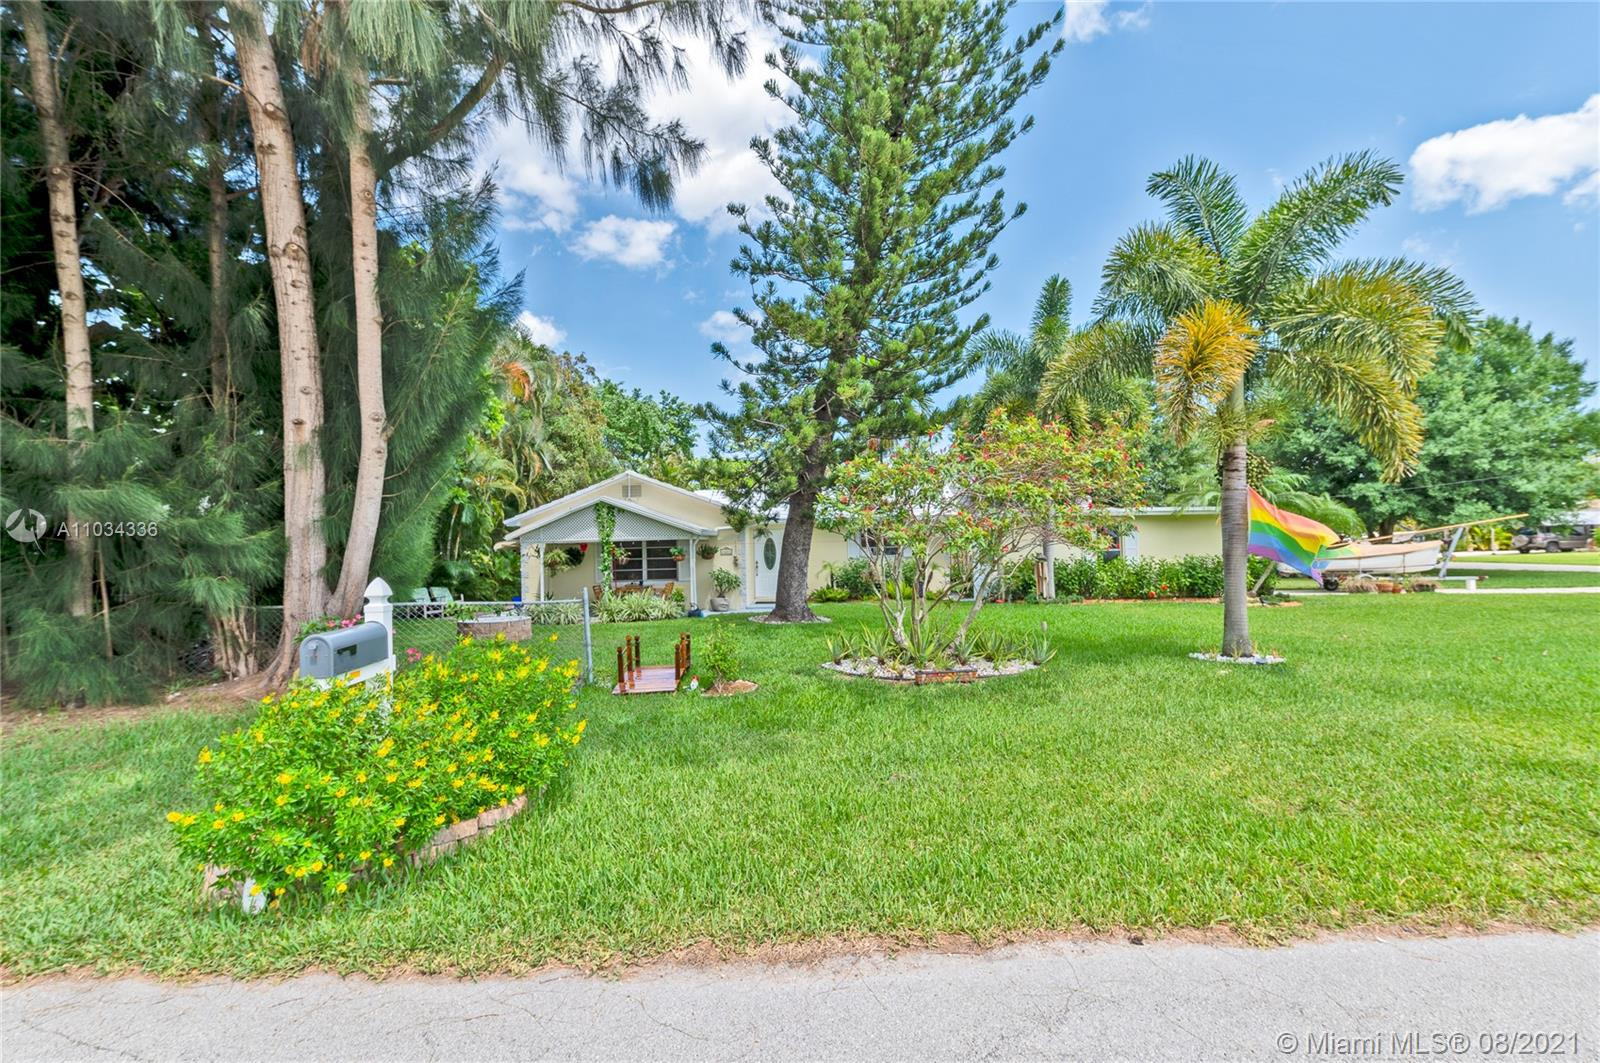 Chula Vista, 1664 SW 28th Ave, Fort Lauderdale, Florida 33312